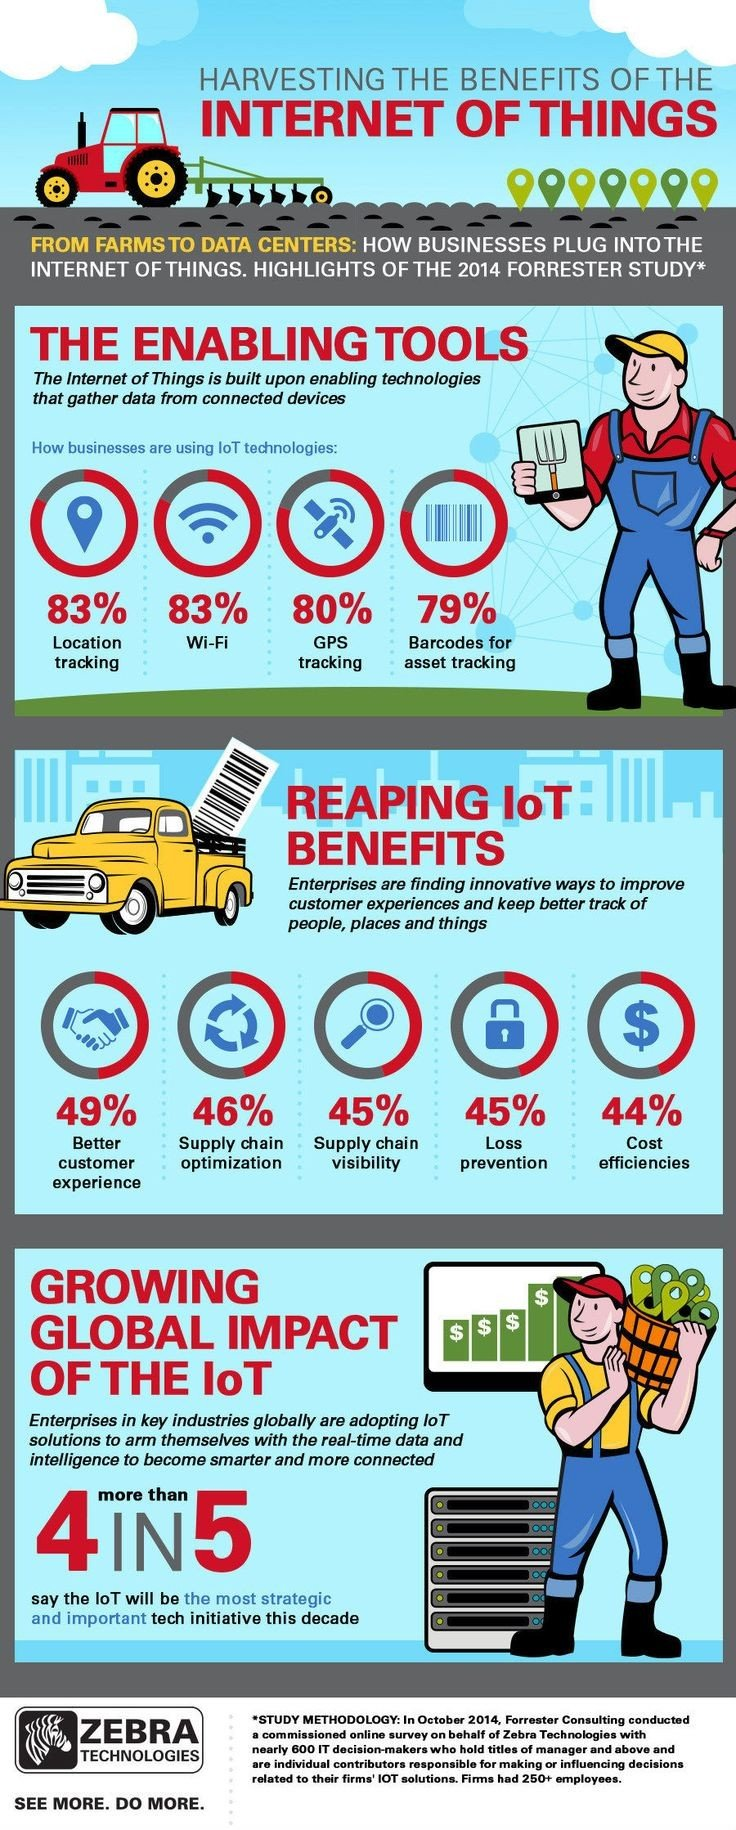 Harvesting the benifits of internet of things #IoT #Smart_City #Infographic